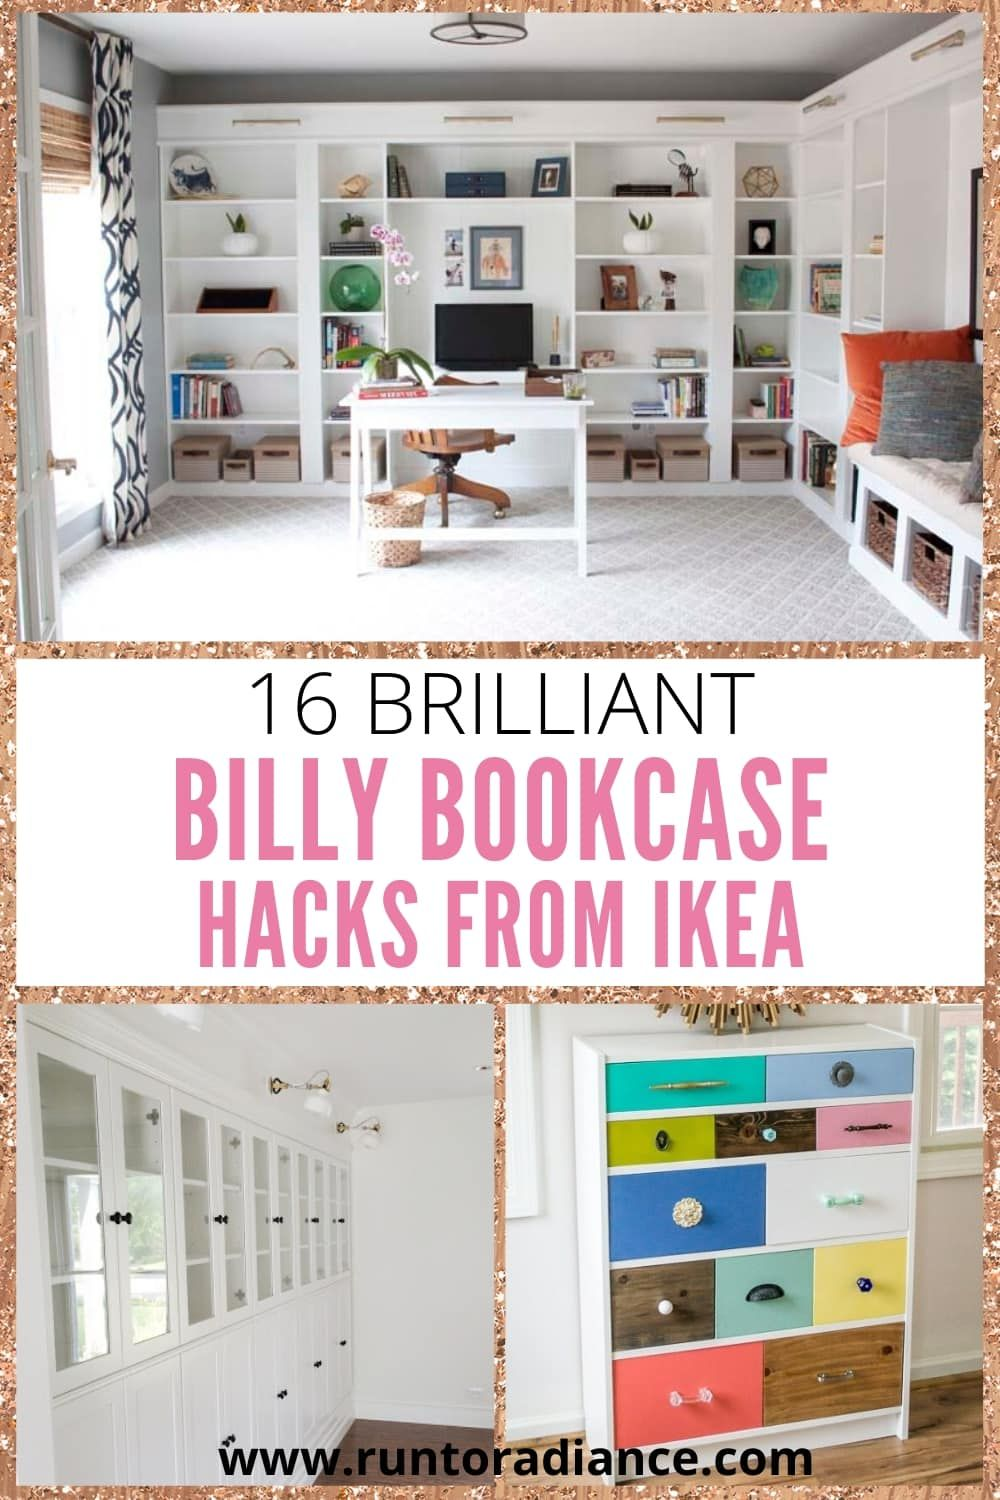 16 Brilliant Billy Bookcase Hacks From Ikea Billy Bookcase Hack Ikea Billy Bookcase Hack Bookcase